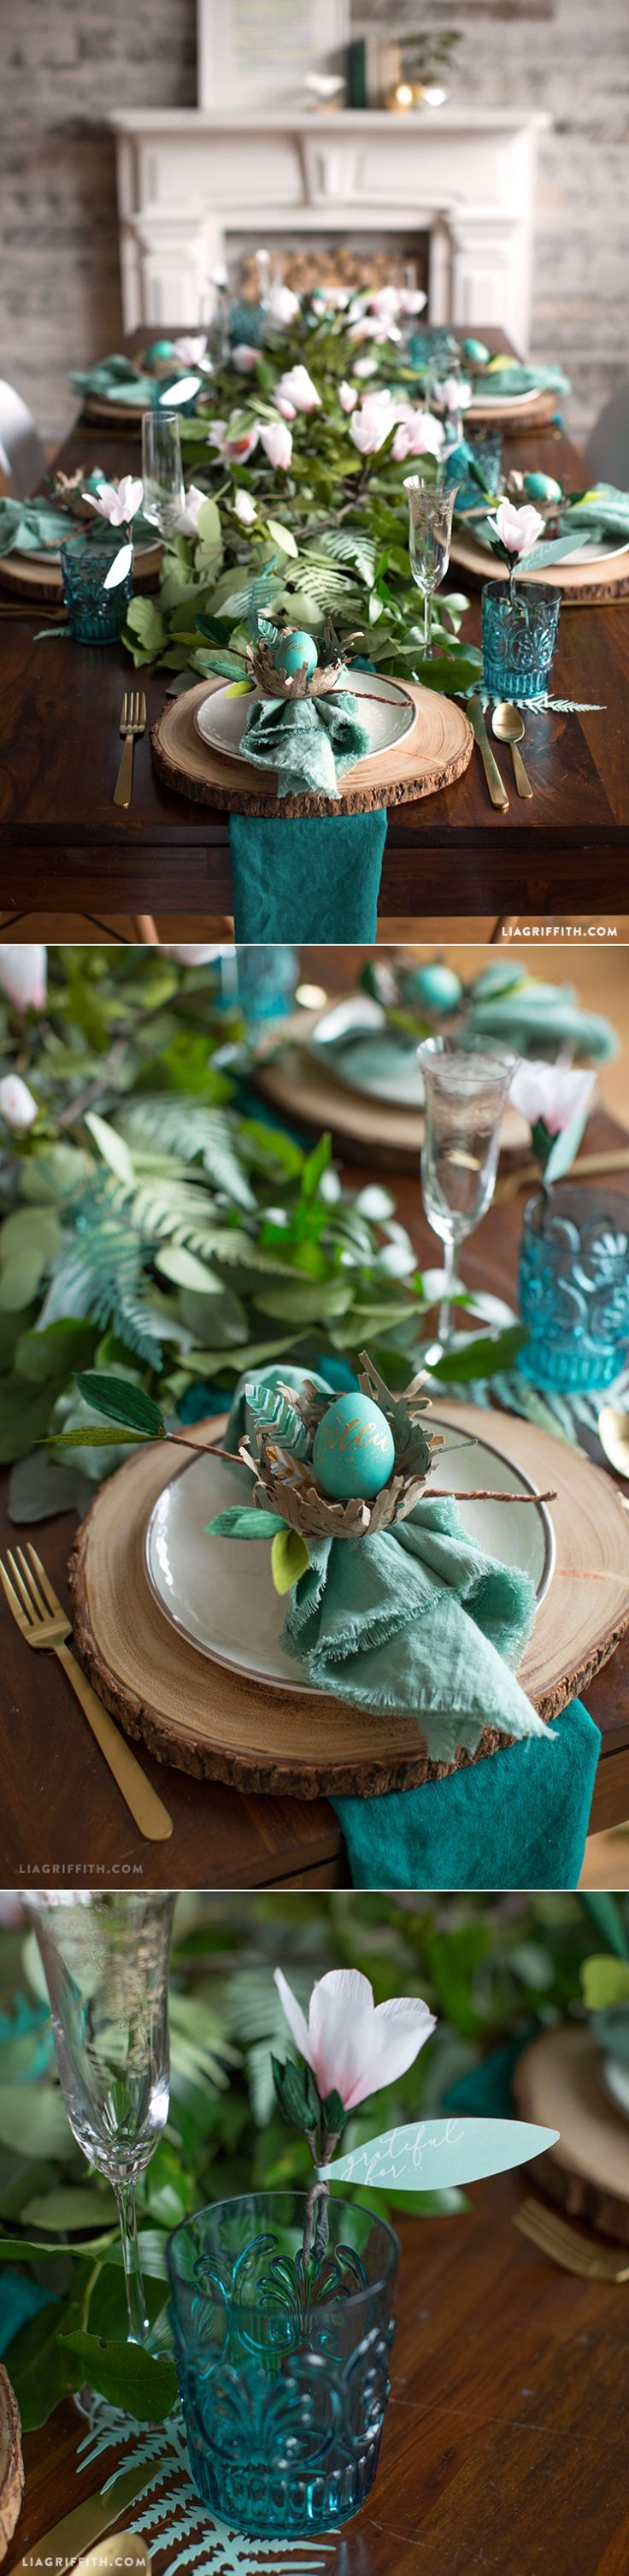 Easter table double dating